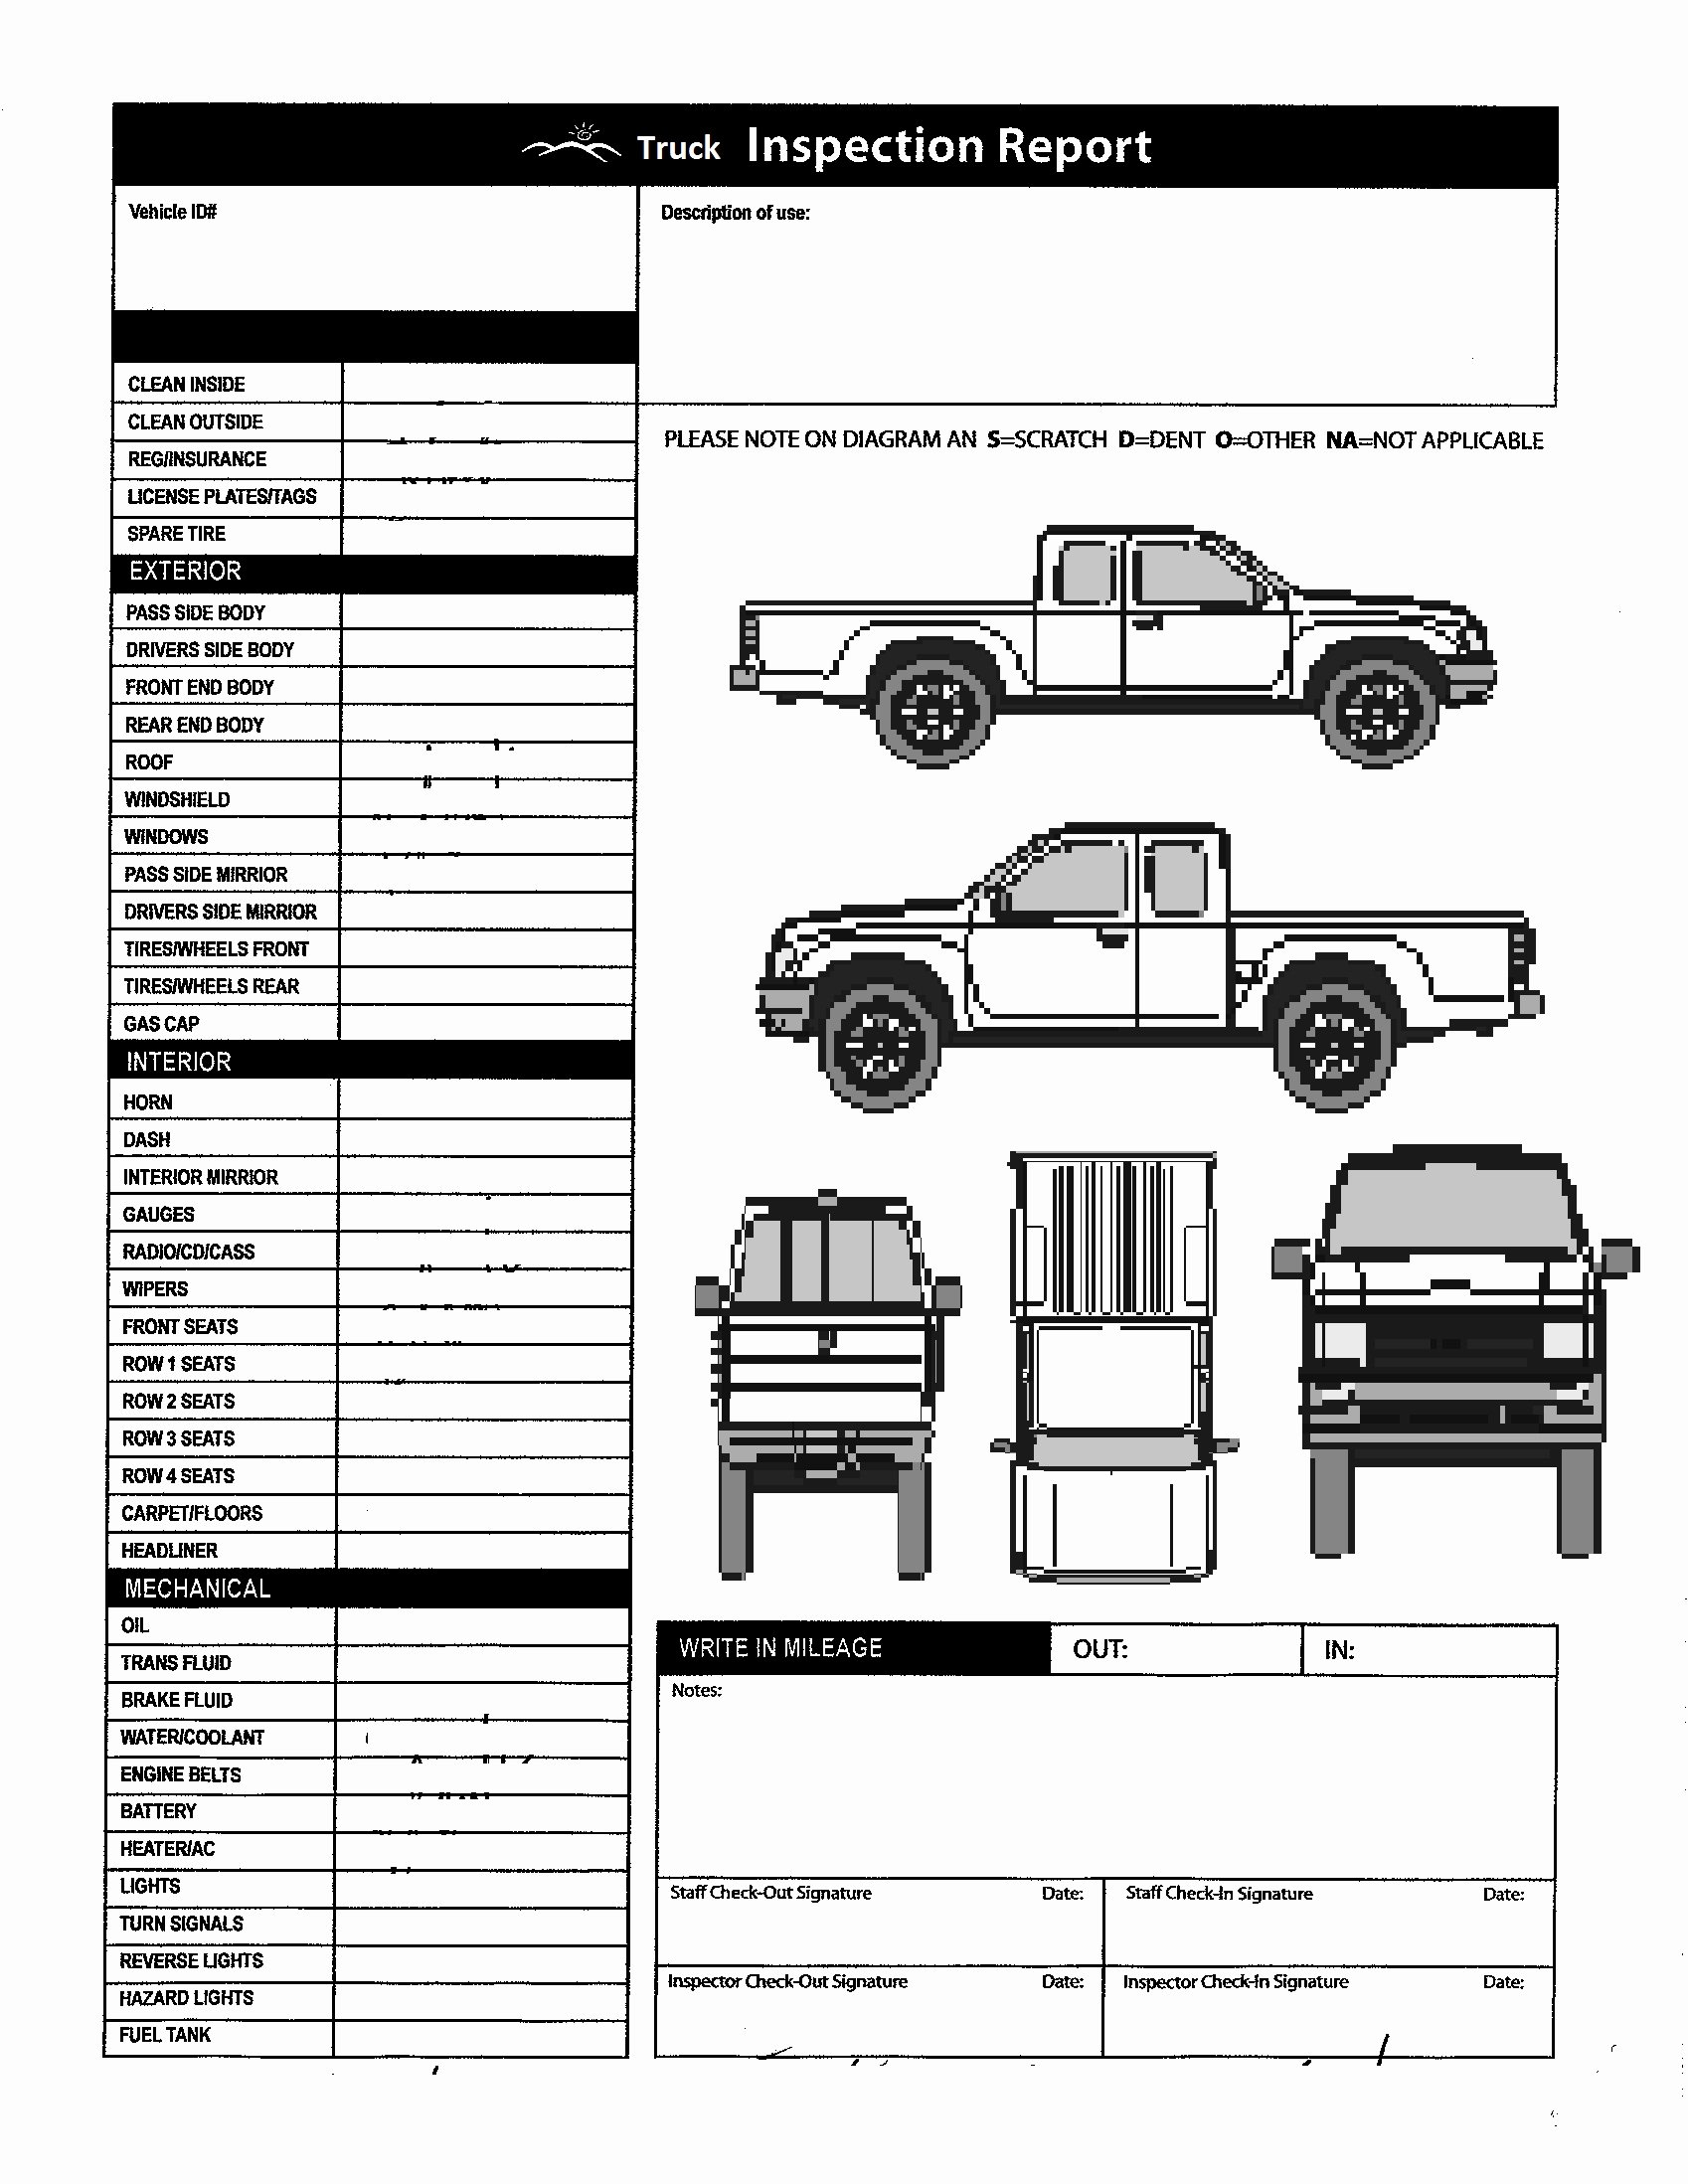 Vehicle Inspection Sheet Template Lovely Vehicle Inspection form Template